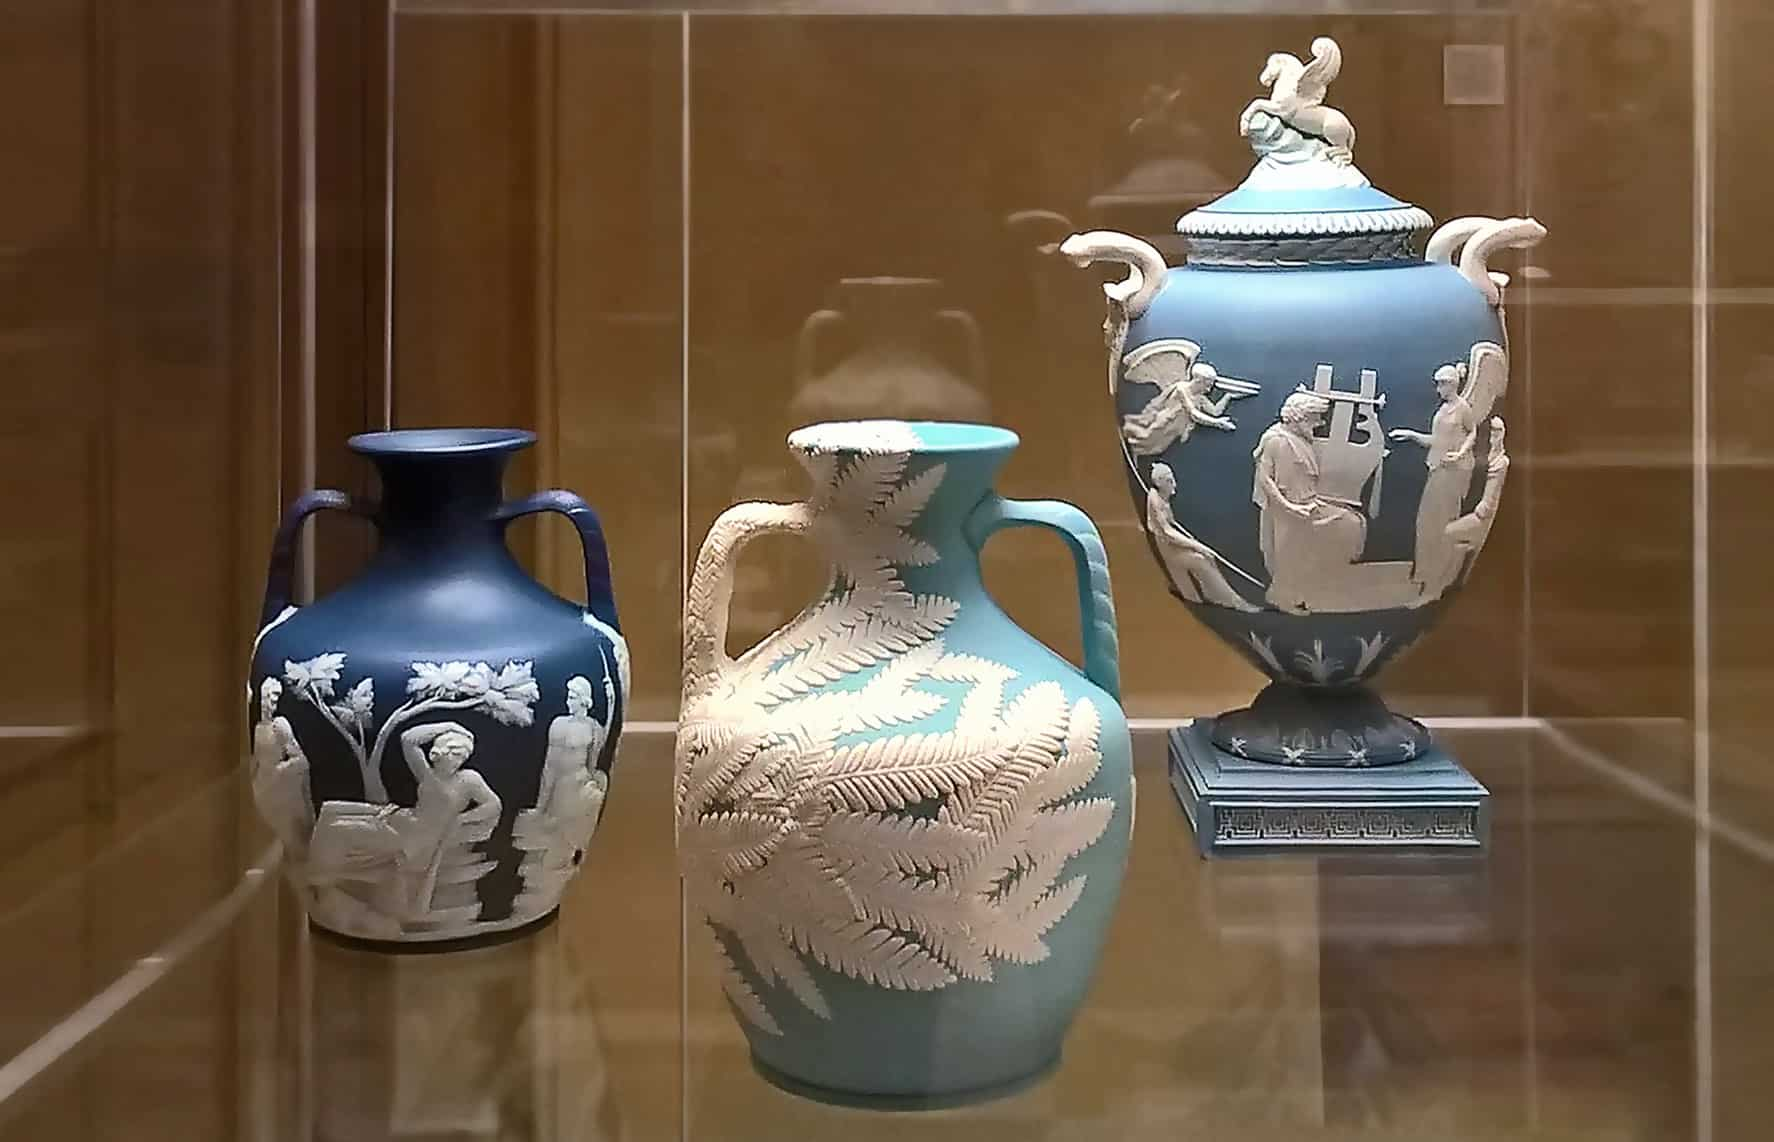 Hitomi Hosono vase in the British Museum alongside a 18th Century Wedgwood vase